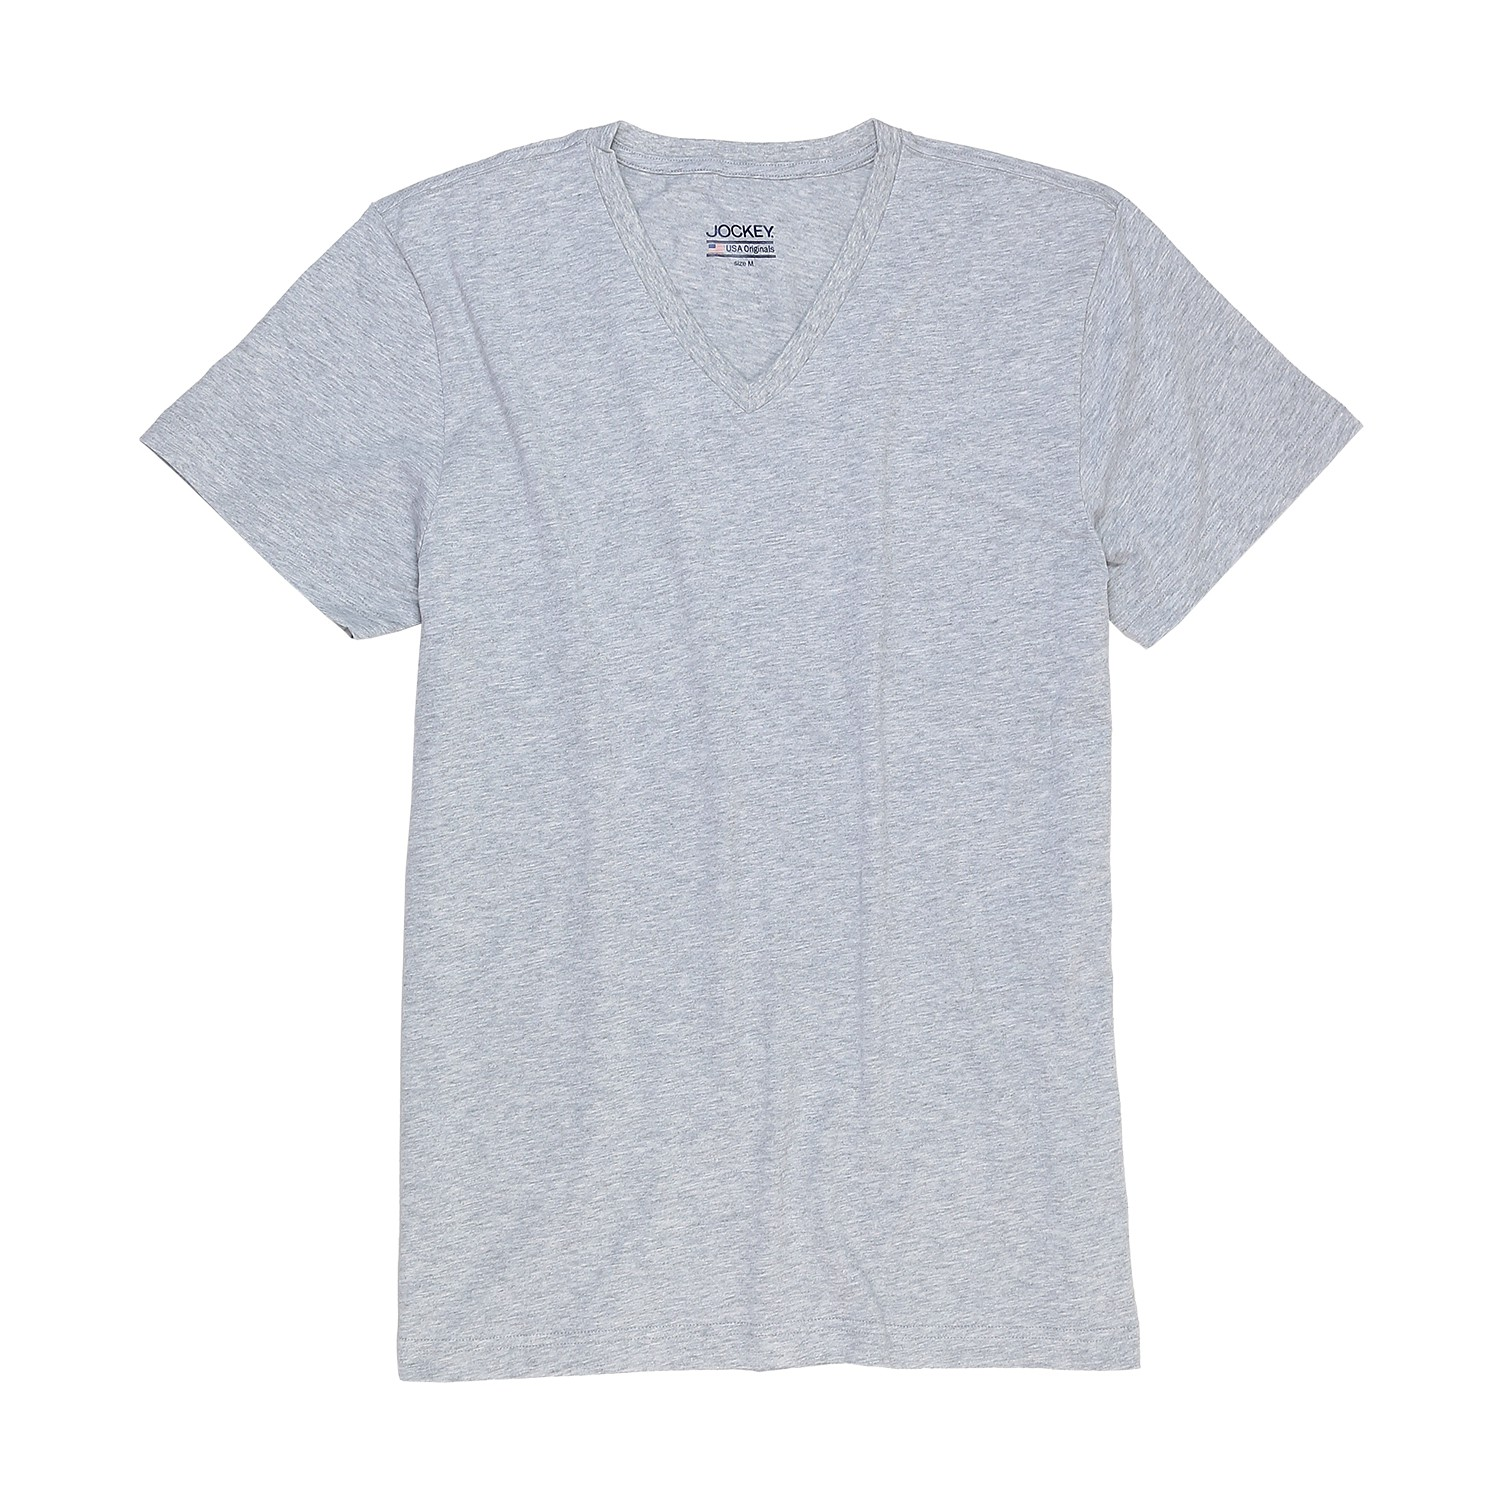 Detail Image to T-shirt with v-neck from Jockey in oversize until 6XL, grey